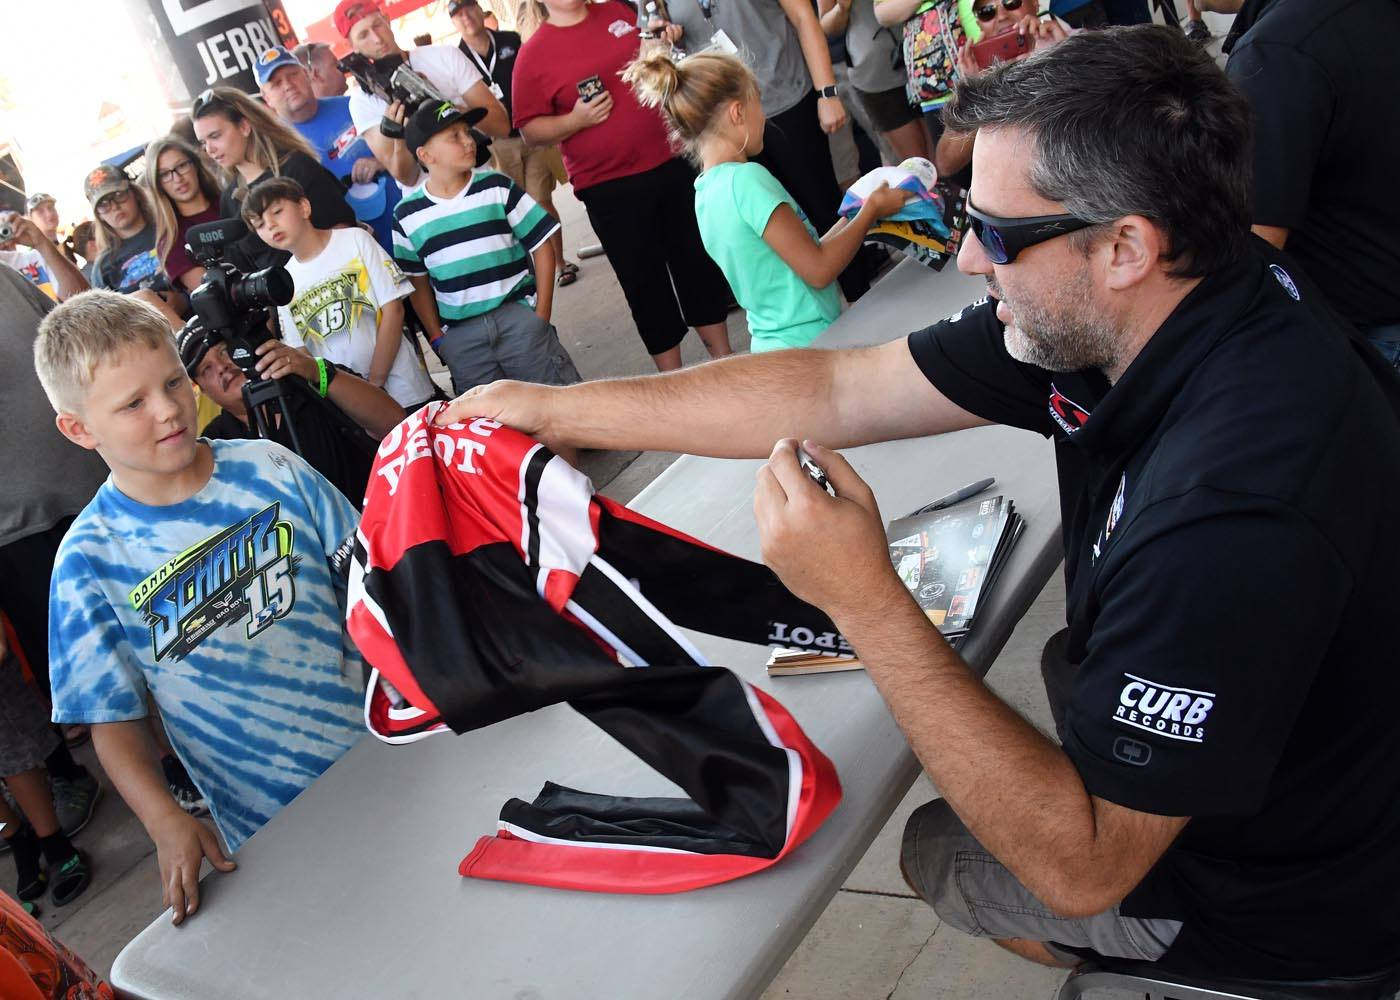 Tony Stewart signs autographs for young fans at Knoxville Raceway